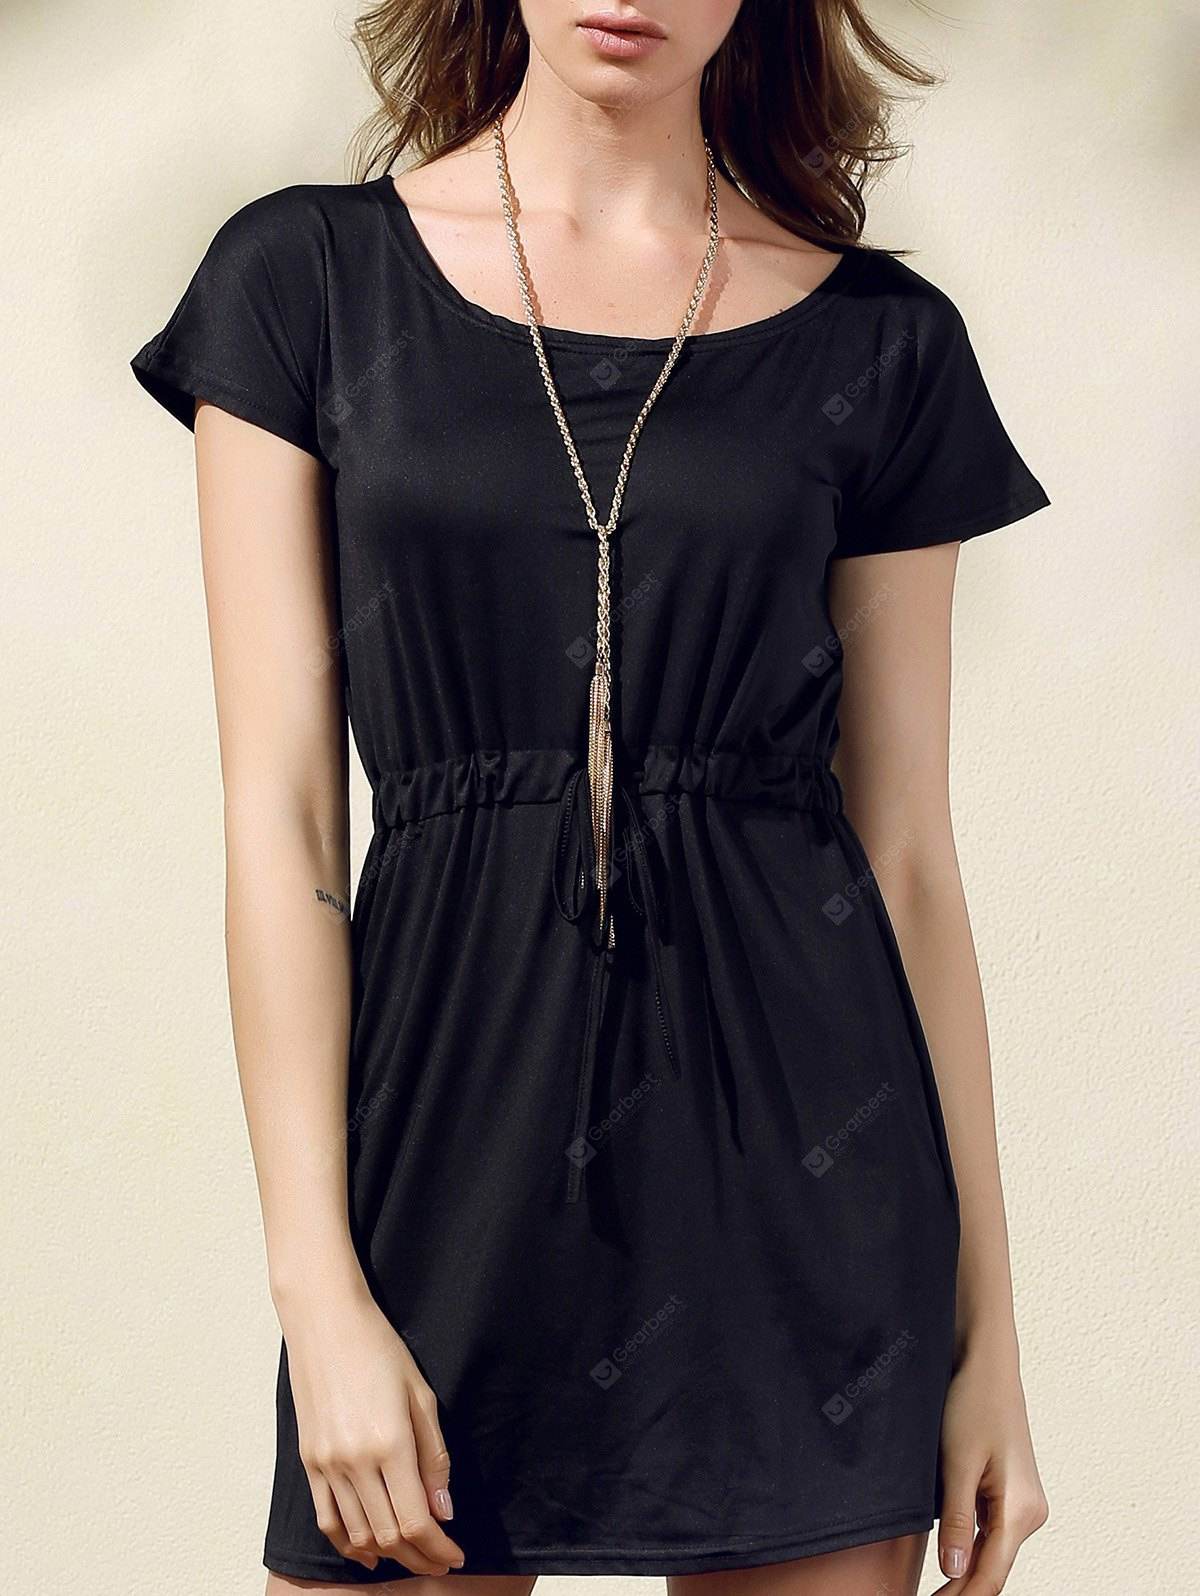 Stylish Scoop Neck Short Sleeve Drawstring Dress For Women